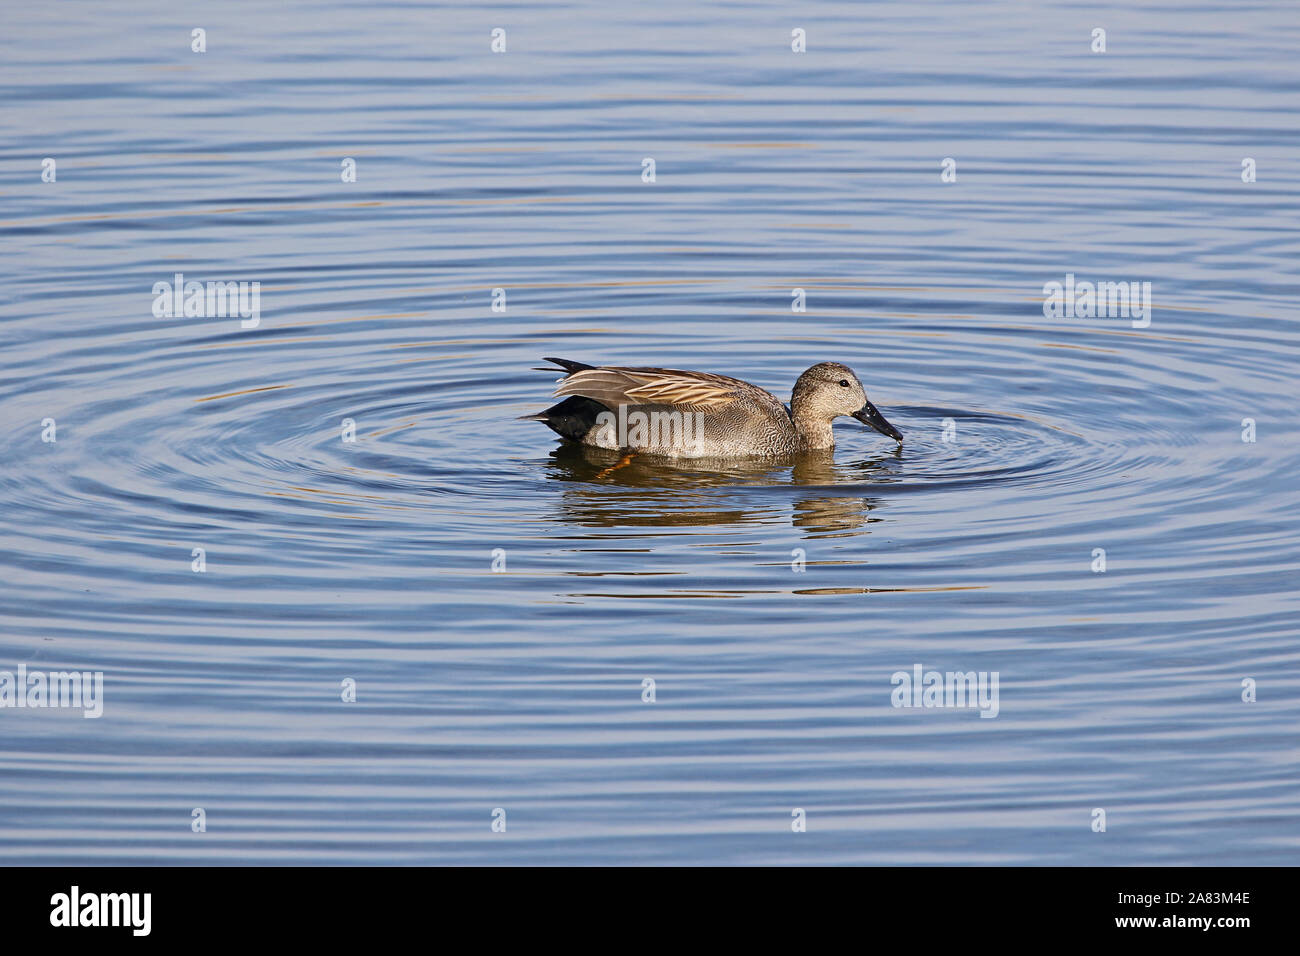 Male gadwall duck Latin name anas strepera family anatidae vulnerable status swimming in the Sentina nature reserve in Porto D'Ascoli Le Marche Italy Stock Photo